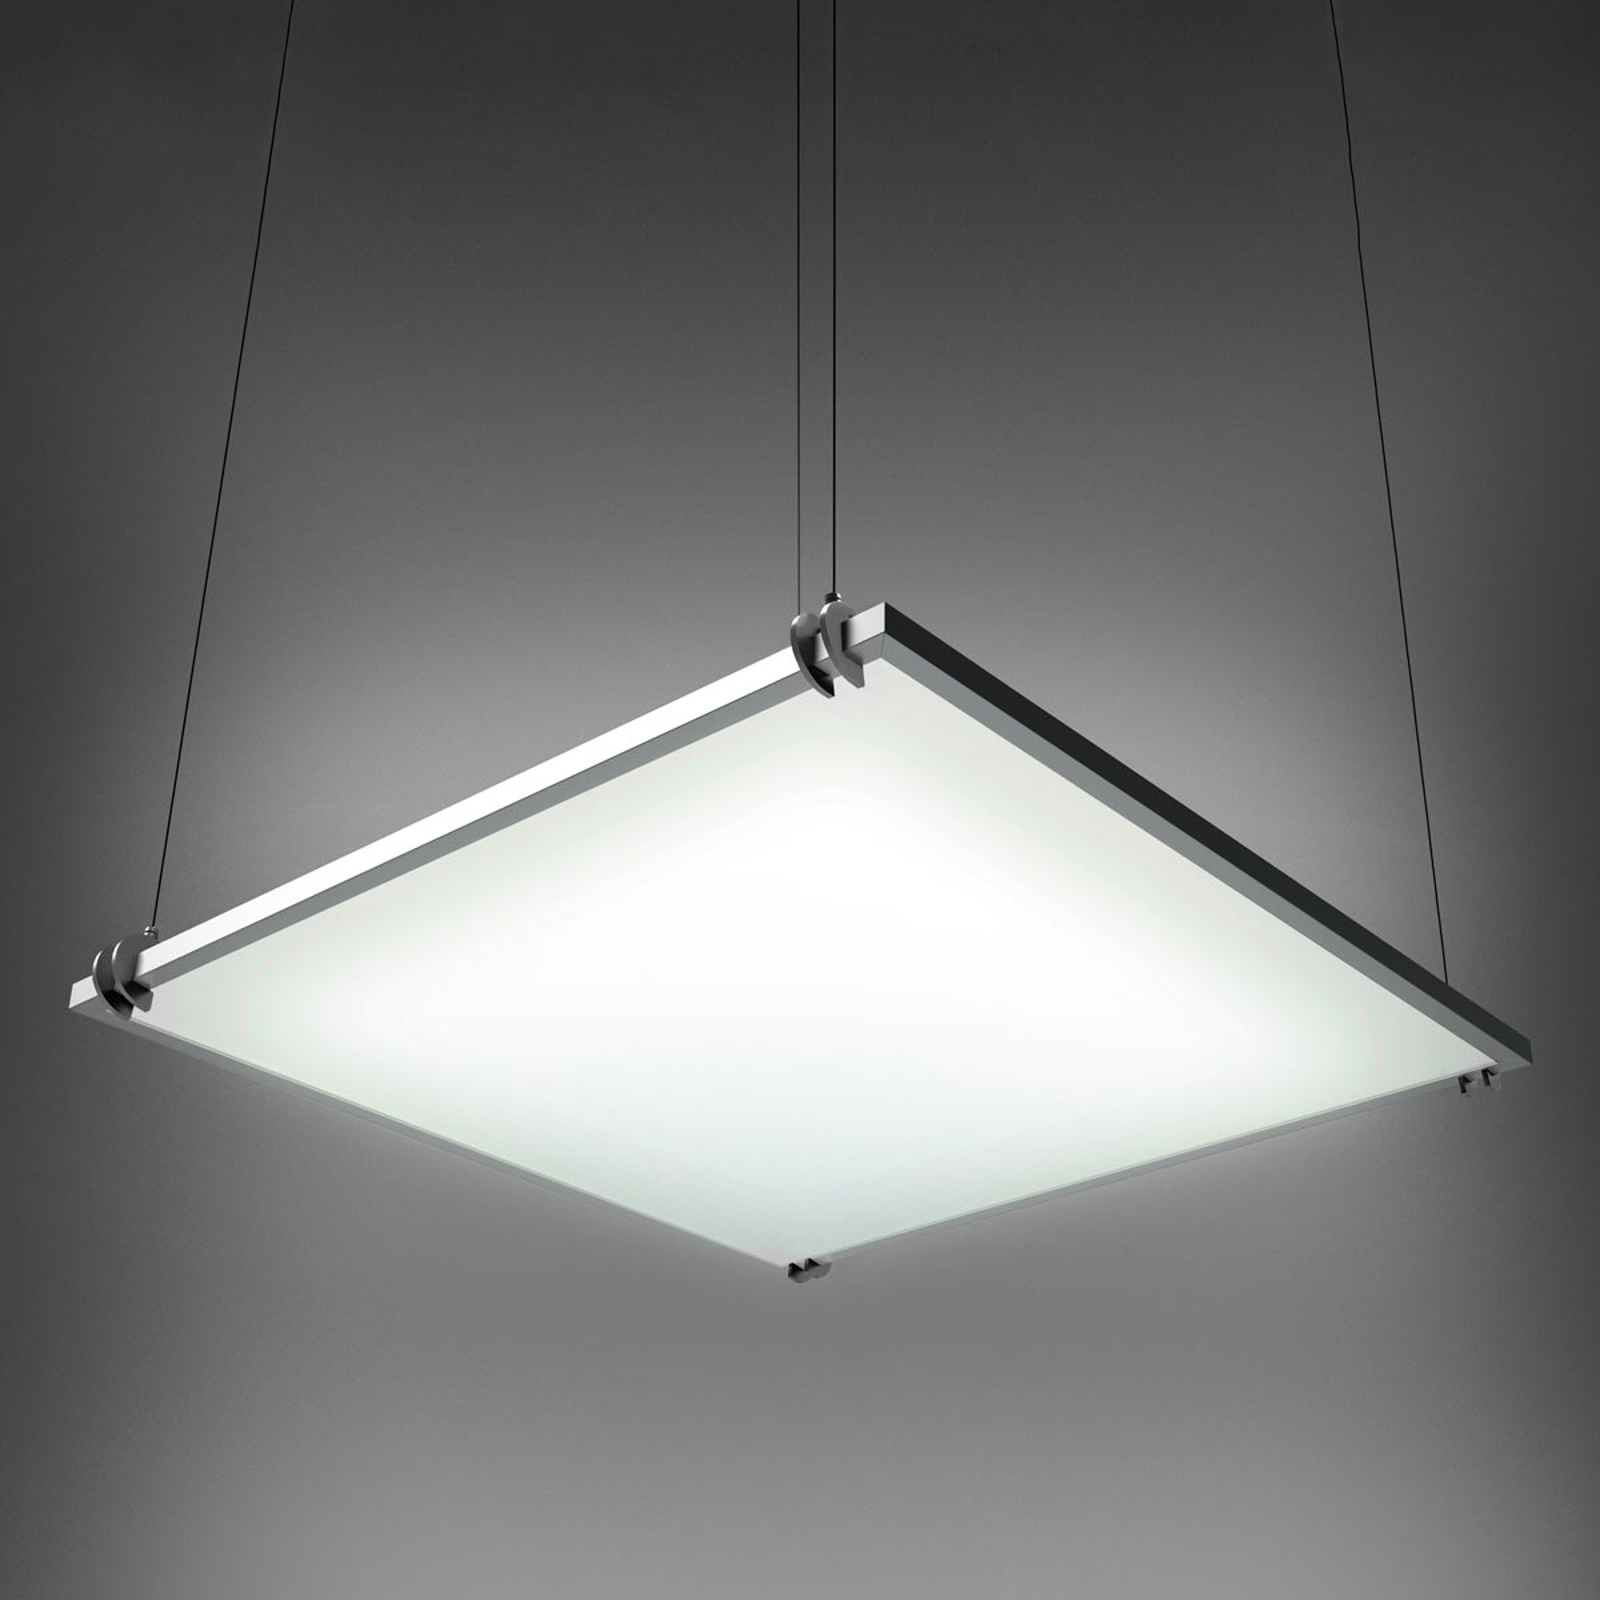 Suspension LED de designer Grafa